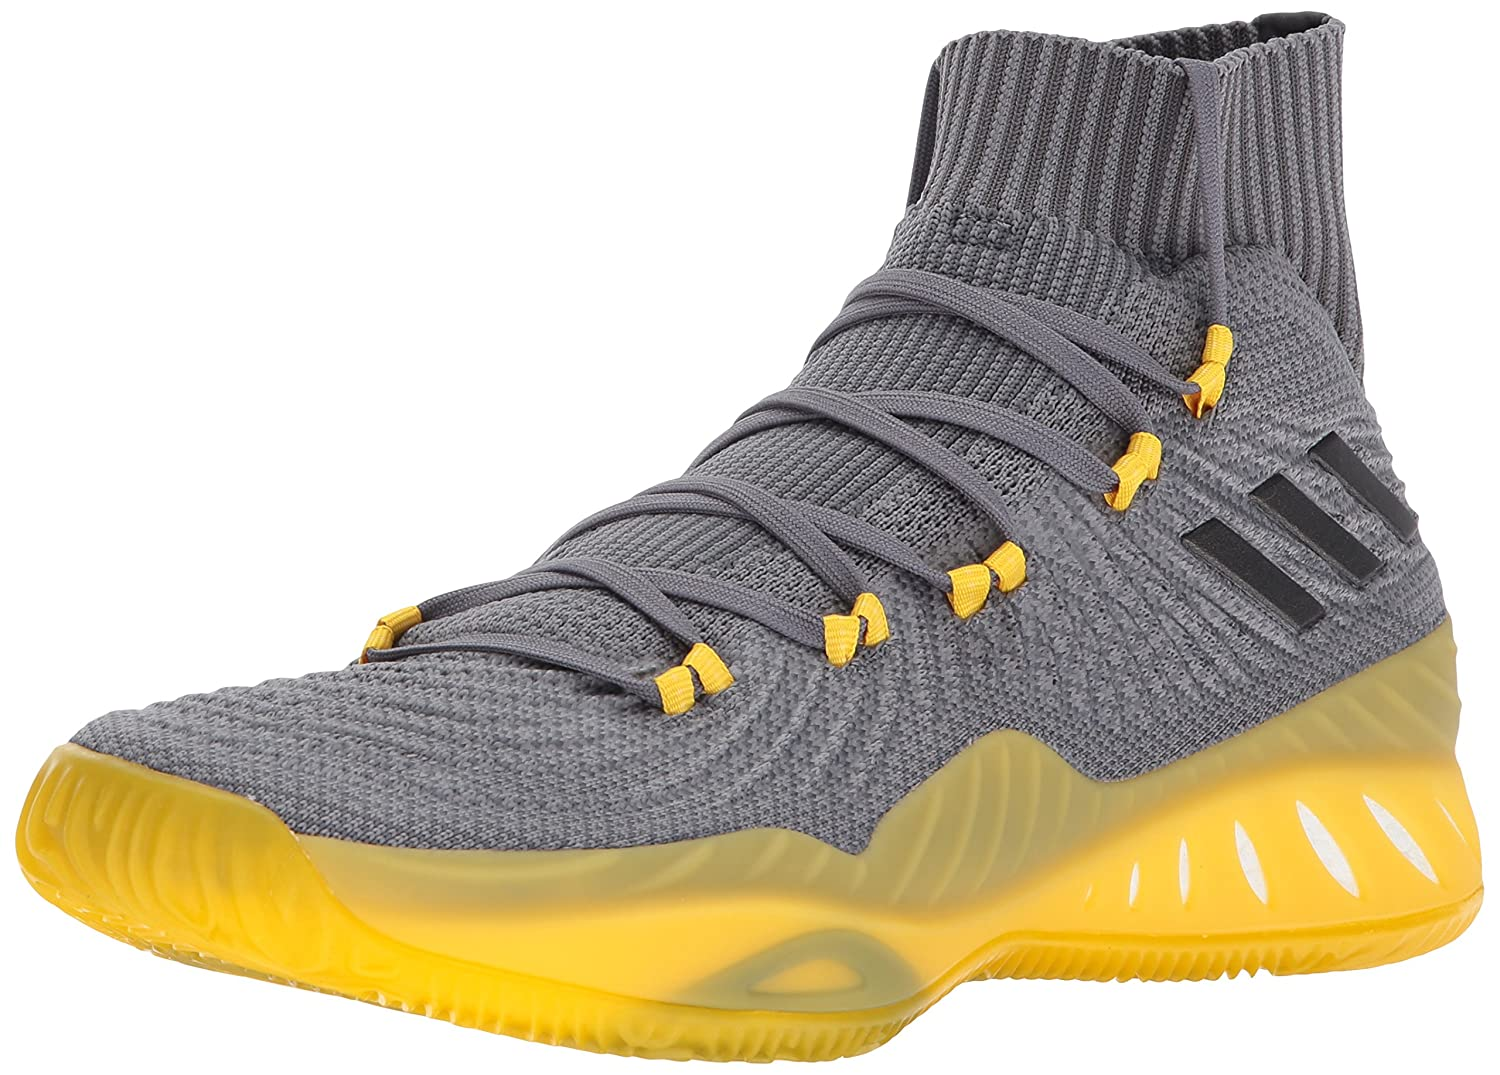 adidas Men's Crazy Explosive 2017 Primeknit Basketball Shoes B01N1UKMQ9 8 M US|Grey Four/Black/Grey Five